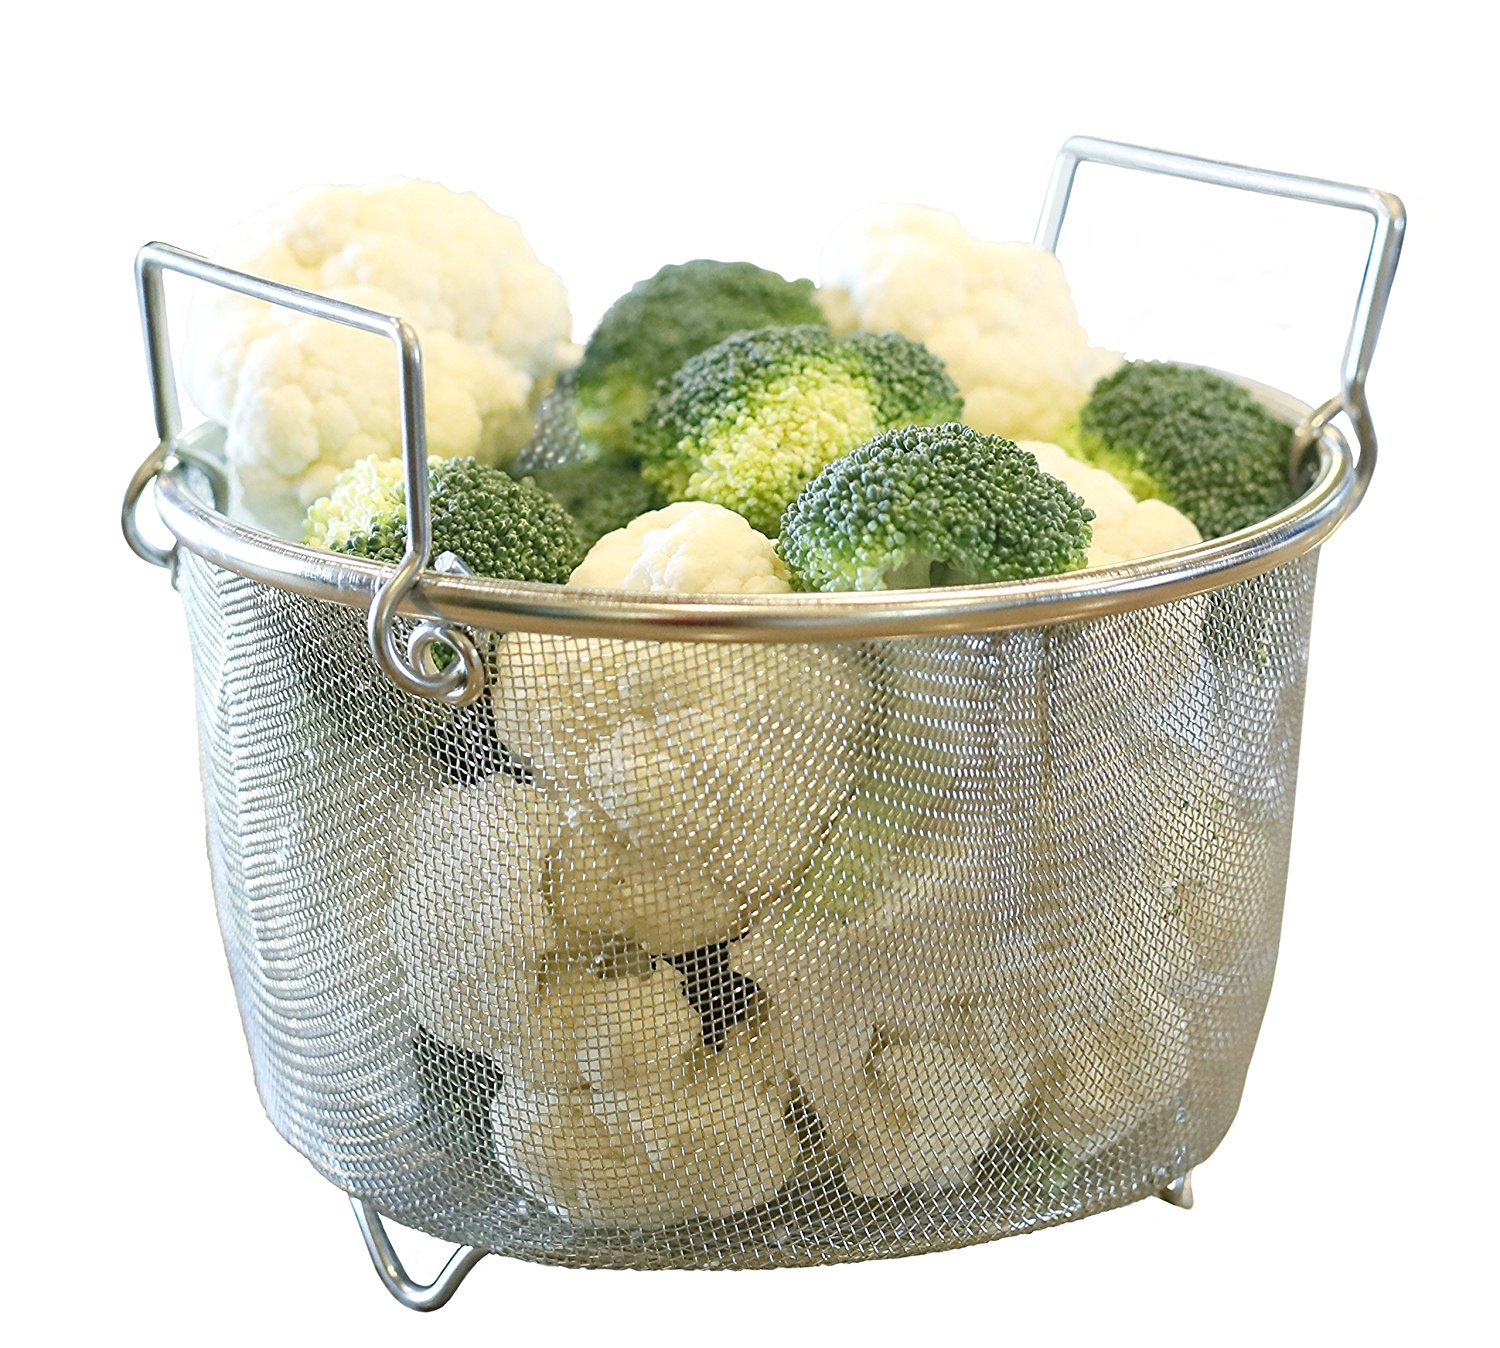 Instant Perrrt! | Premium Steamer Basket | Perfectly Prepares Vegetables, Eggs, Meats & More | Instant Pot Pressure Cooker Accessory | Stainless Steel & Dishwasher Safe | 8 Quart